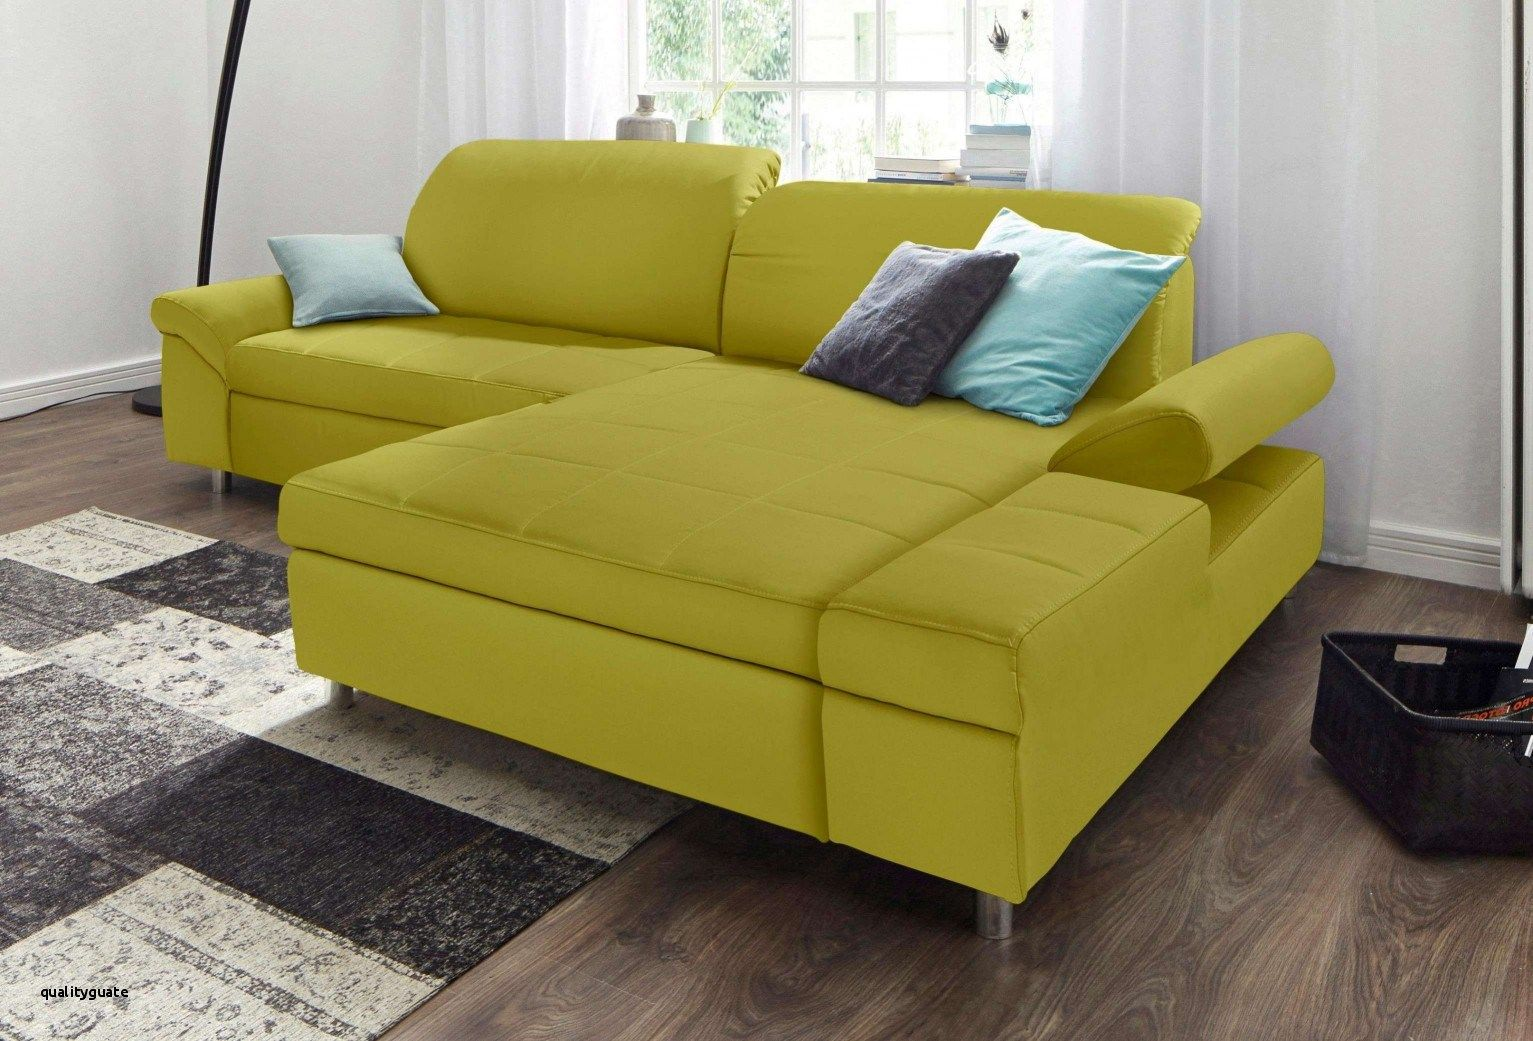 Retro Style Furniture Yellow Living Room Murphy Bed Sofa Large Living Room Furniture